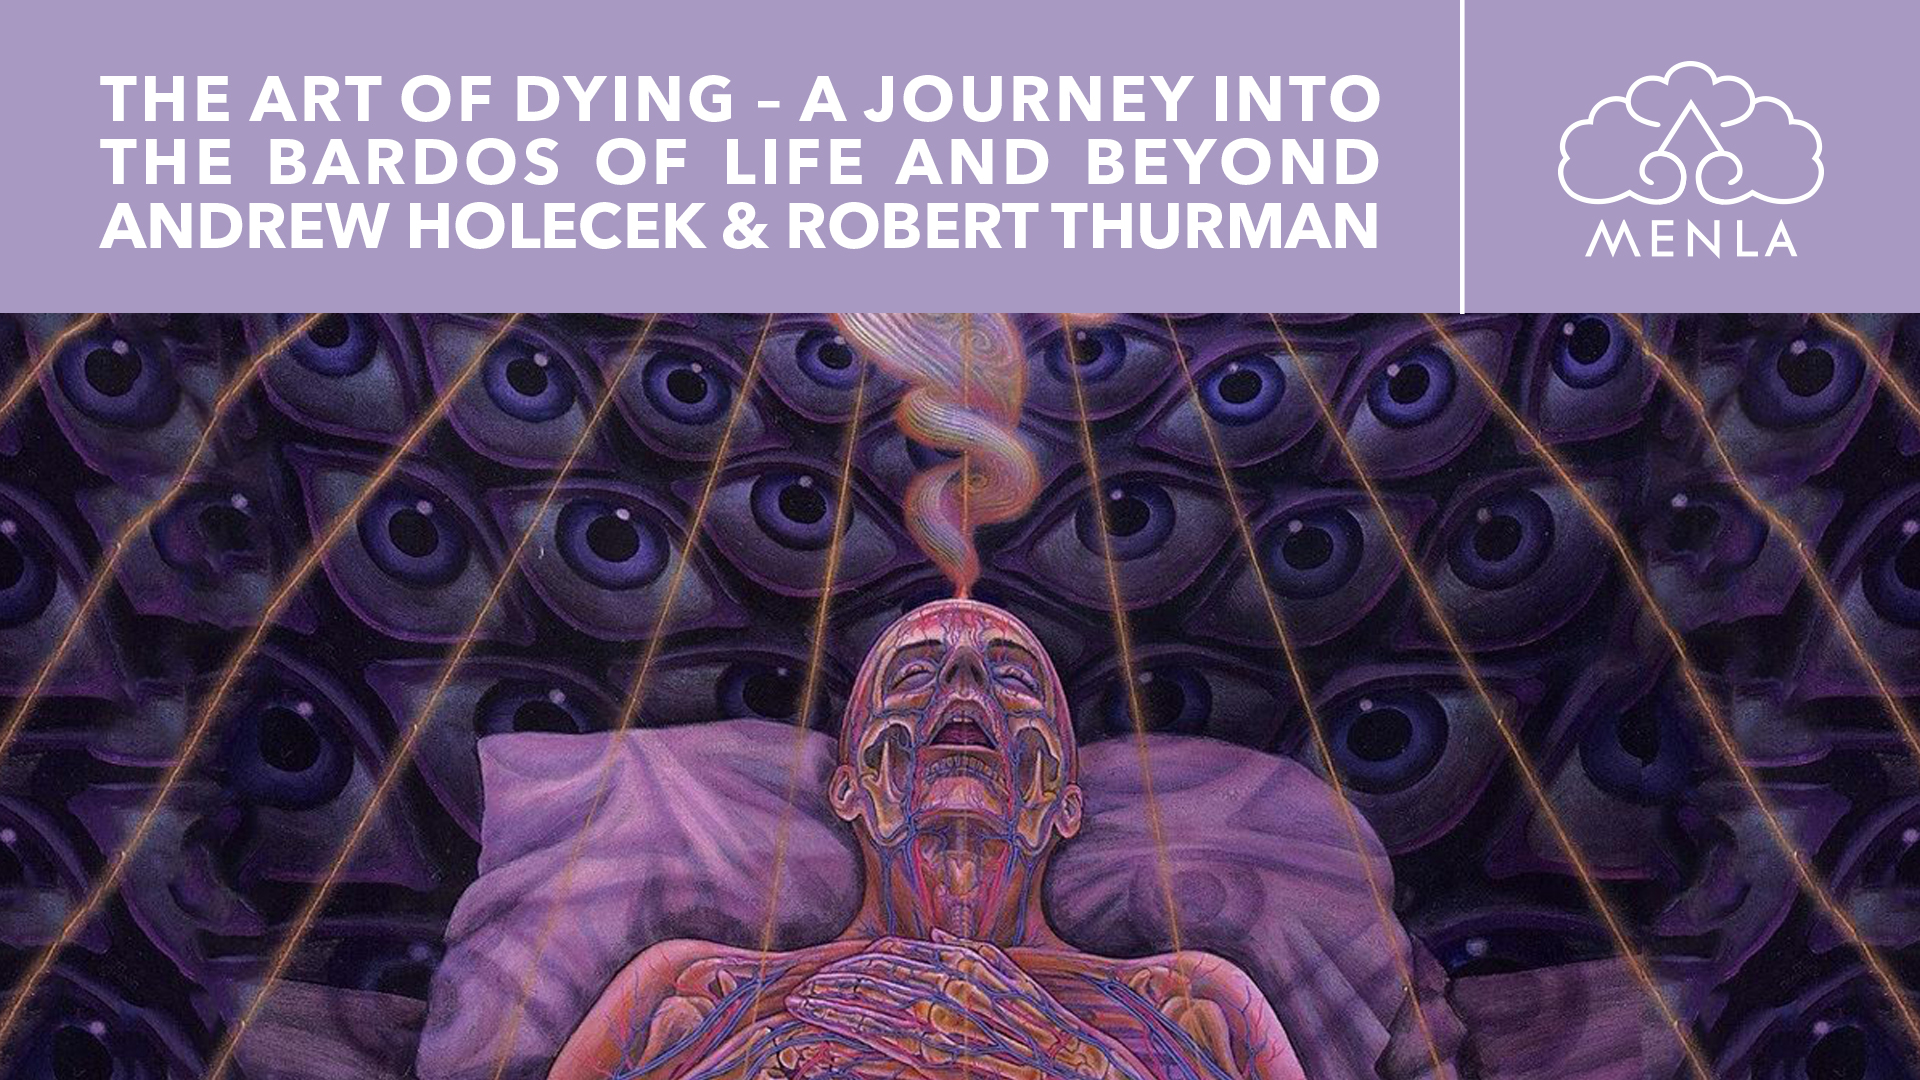 Death and the Art of Dying: A Journey into the Bardos of Life and Beyond with Andrew Holecek and Robert A.F. Thurman May 29th - June 5th, 2020 at Menla Retreat and Dewa Spa in Phoenicia, New York.